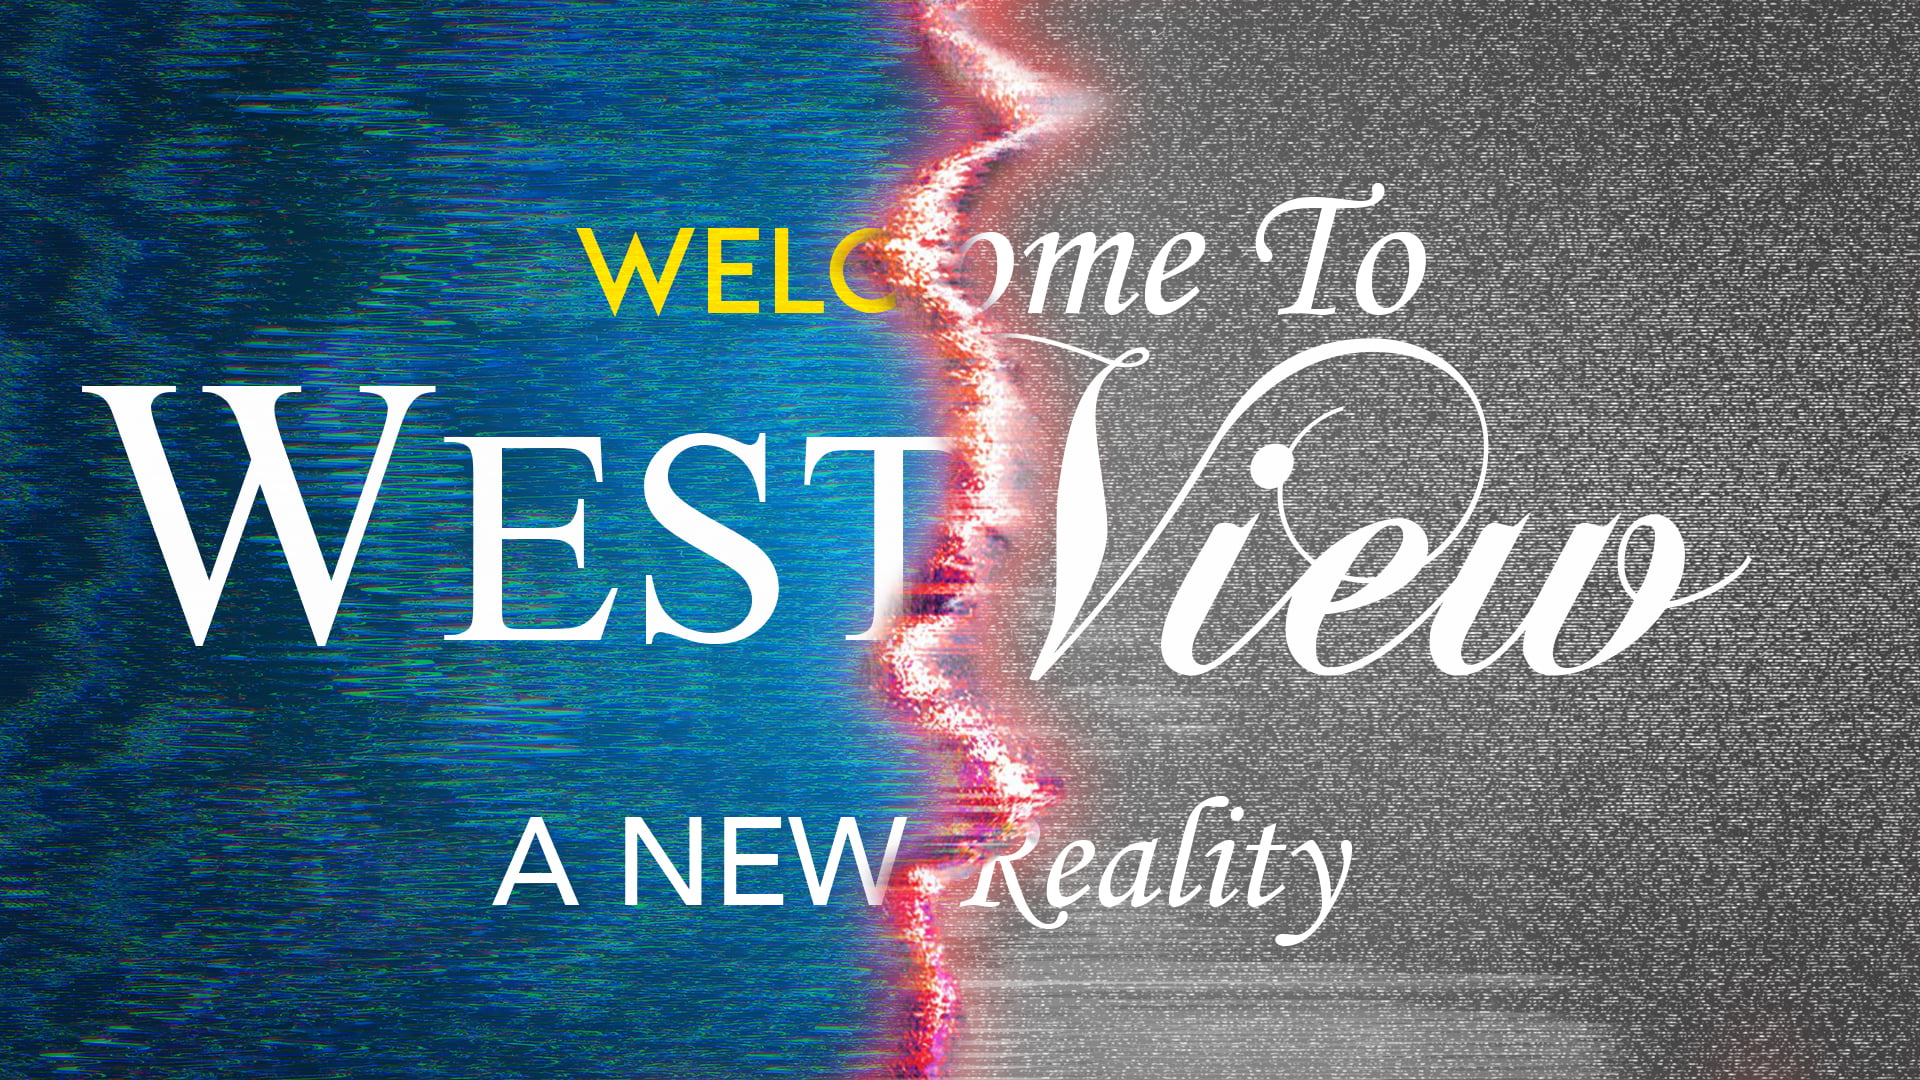 """WANDAVISION': """"Welcome to WestView"""" - Murphy's Multiverse -"""